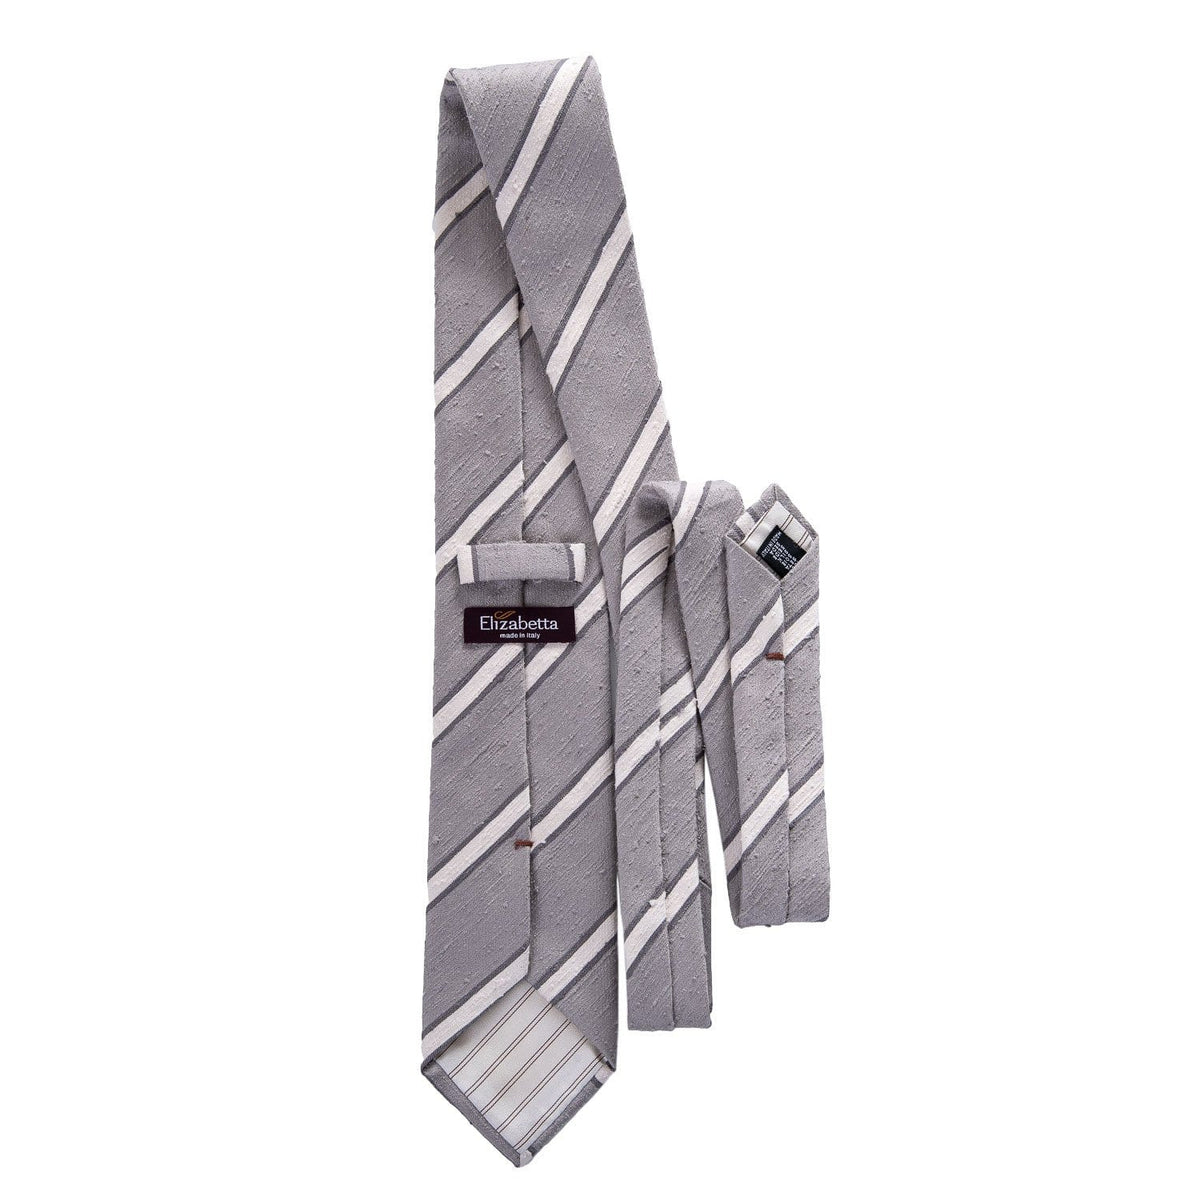 luxury shantung tie grey and cream